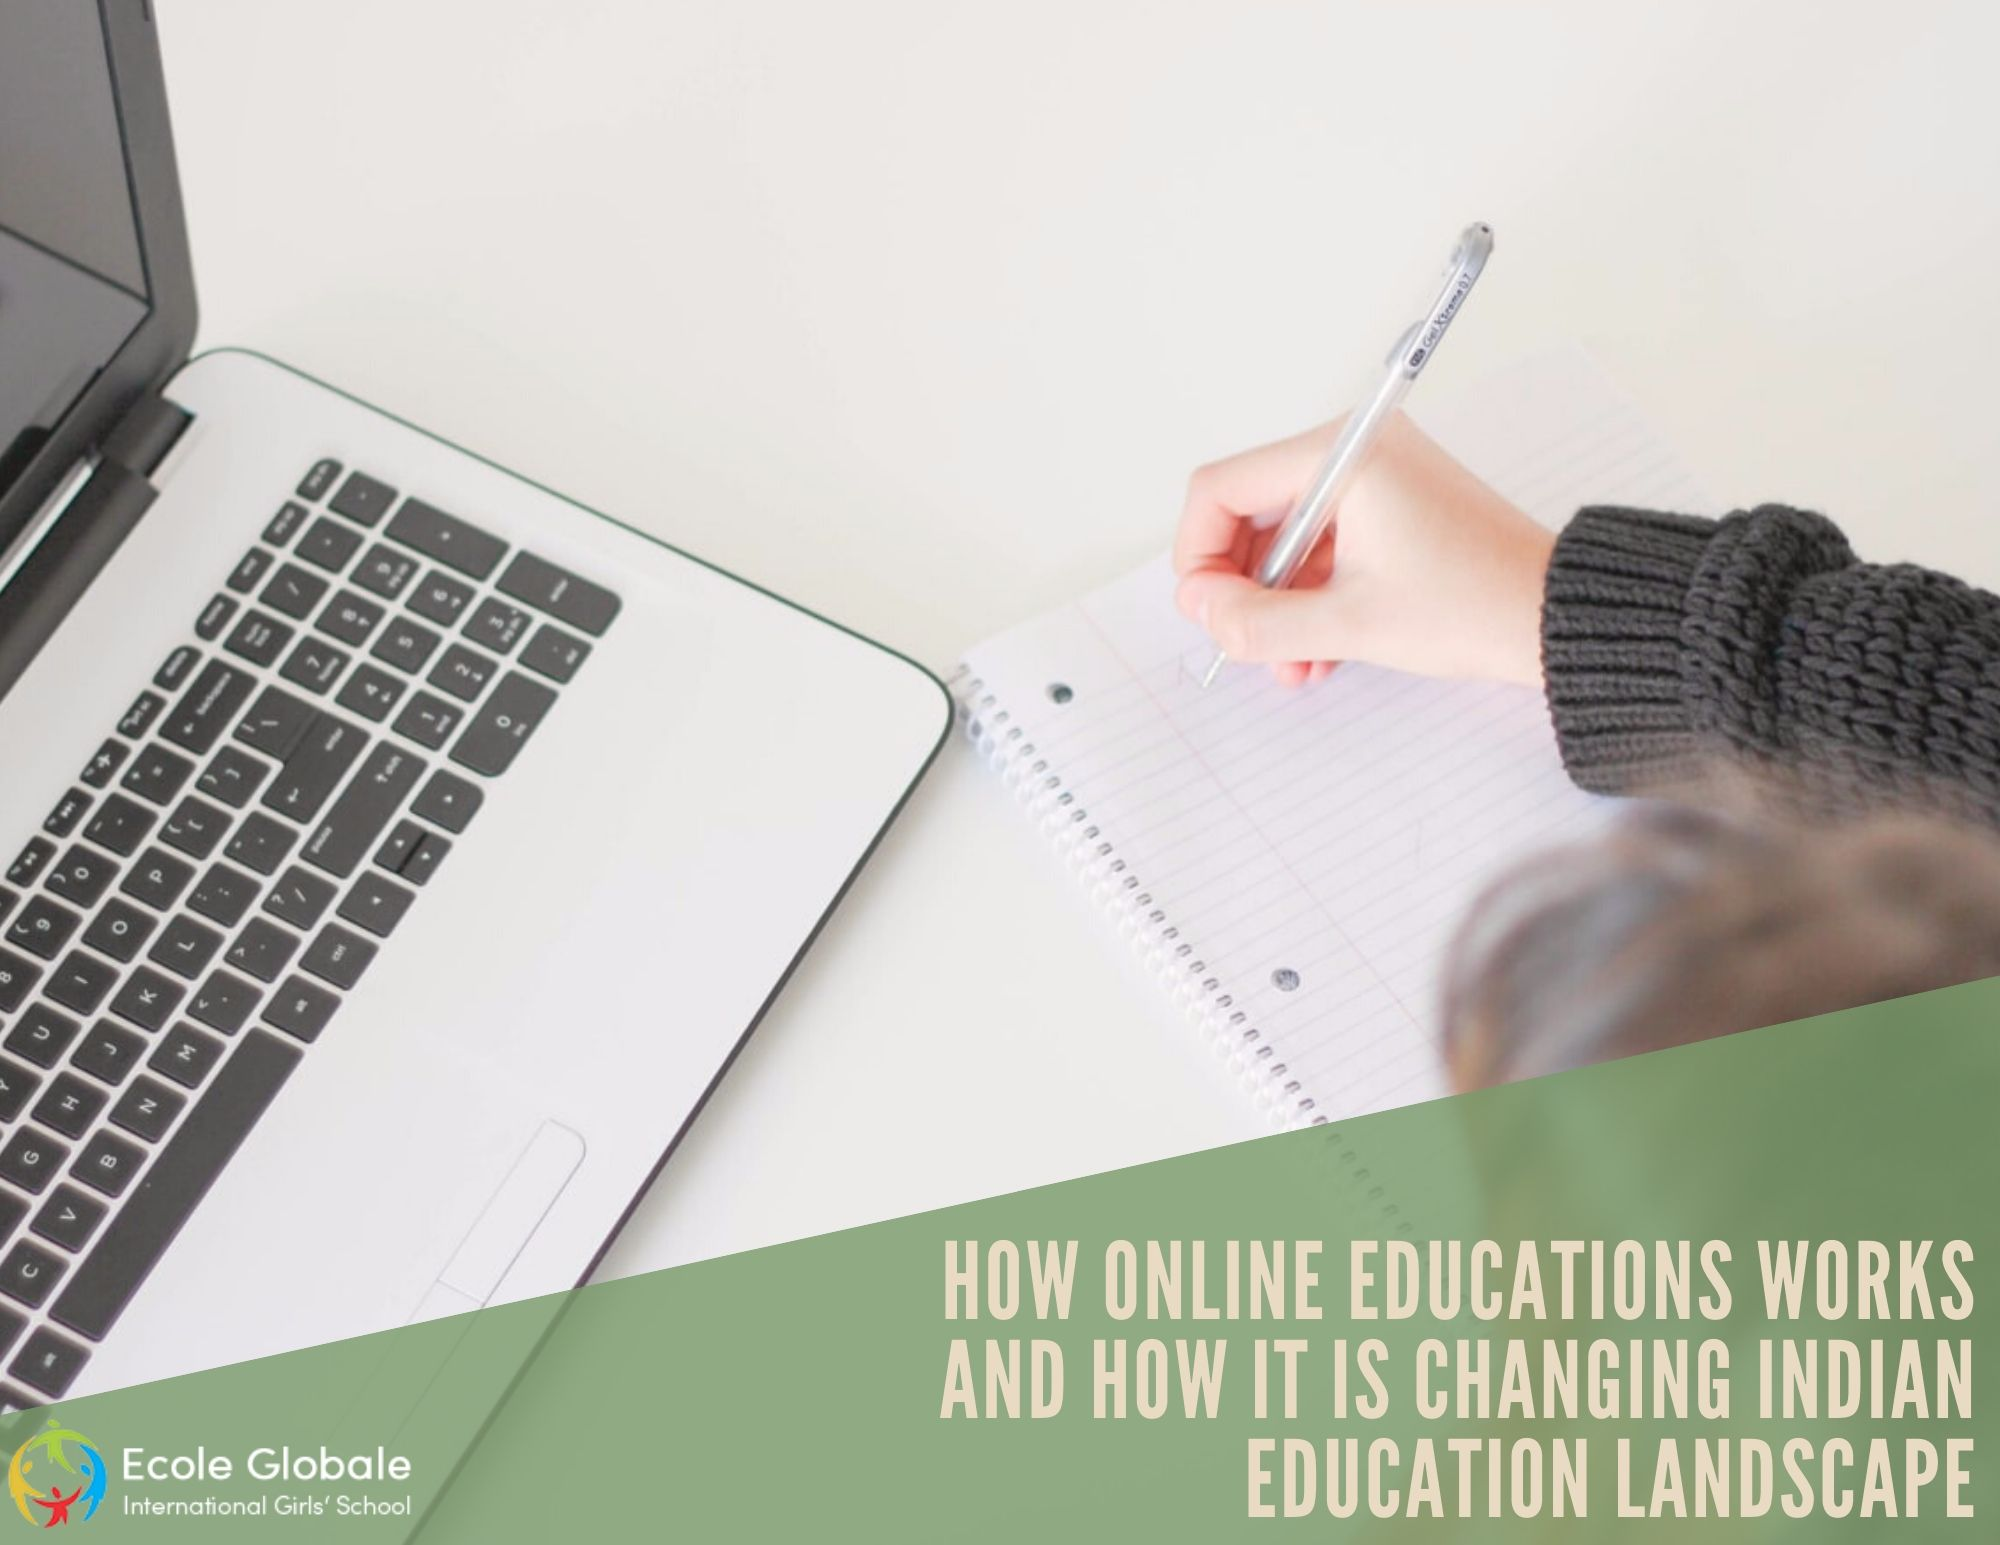 How Online Educations Works and How It Is Changing Indian Education Landscape